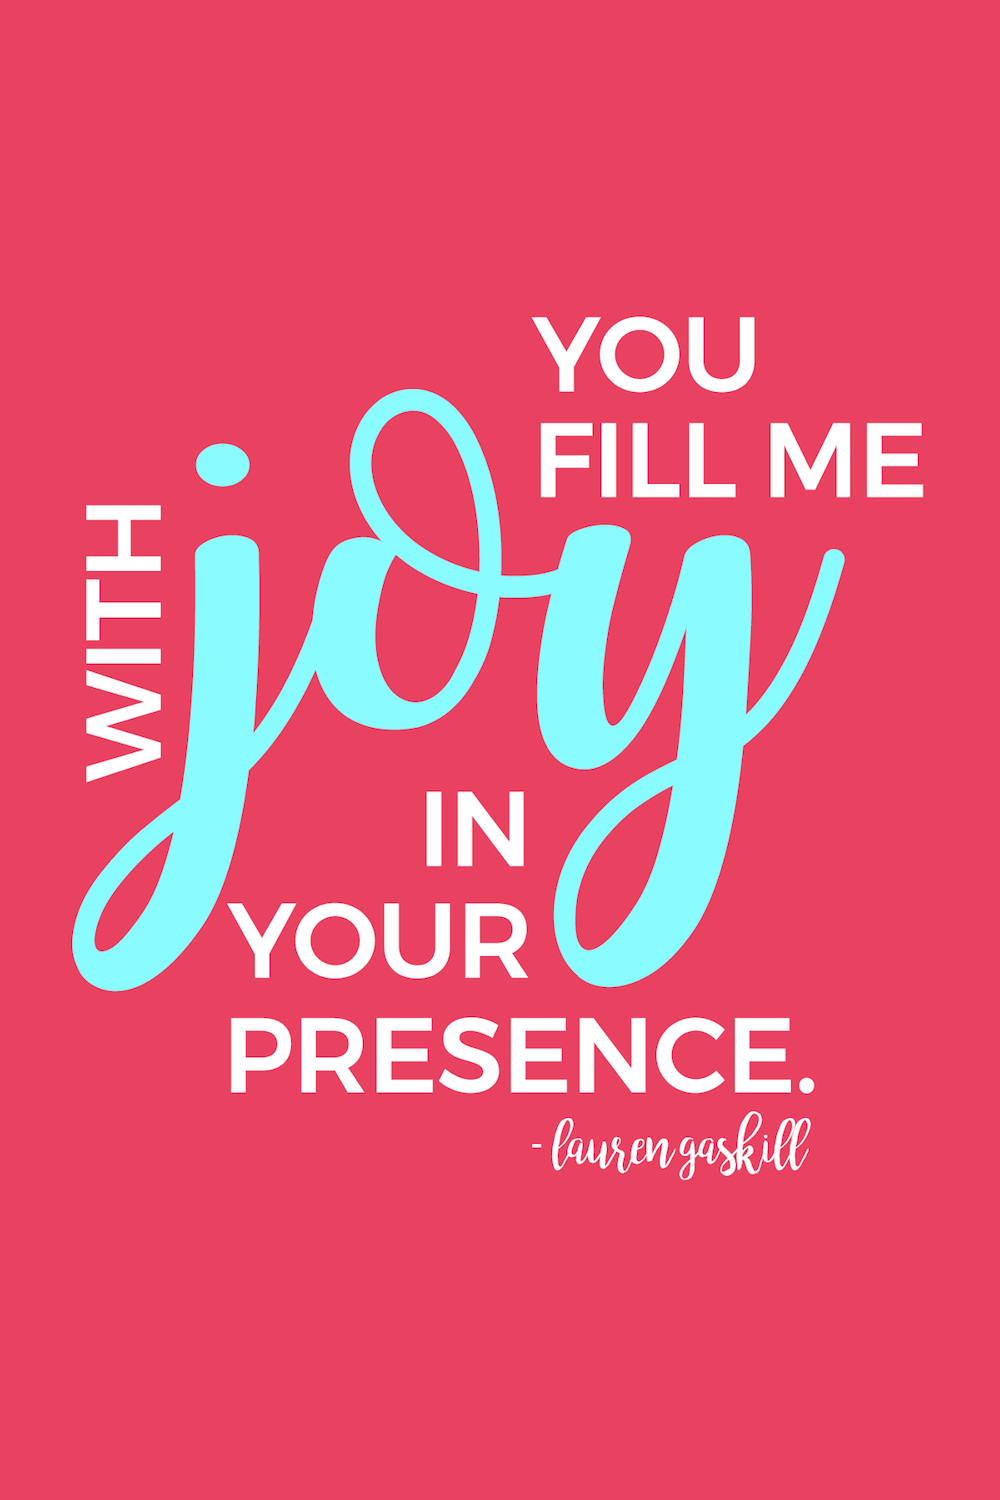 In God's presence, there is fullness of joy. -Psalm 16:11